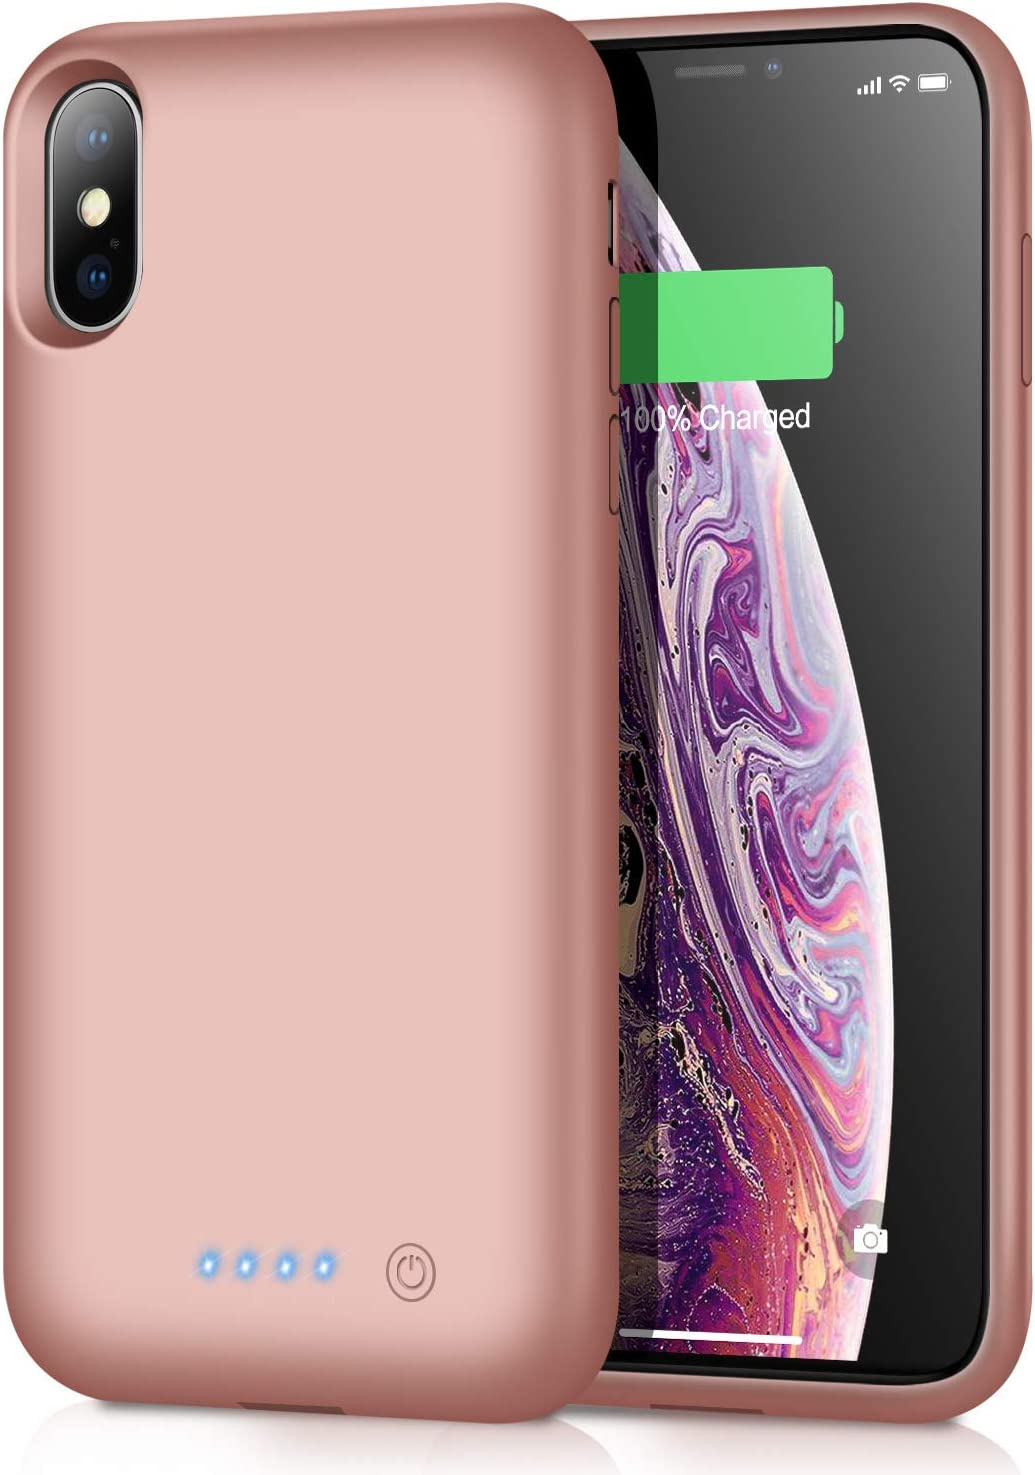 Battery Case for iPhone Xs MAX, 7800mAh Portable Battery Pack Ultra Rechargeable Smart Case Protective Battery Charging Case for iPhone Xs MAX External Battery Backup Cover(6.5 inch) - Rose Gold